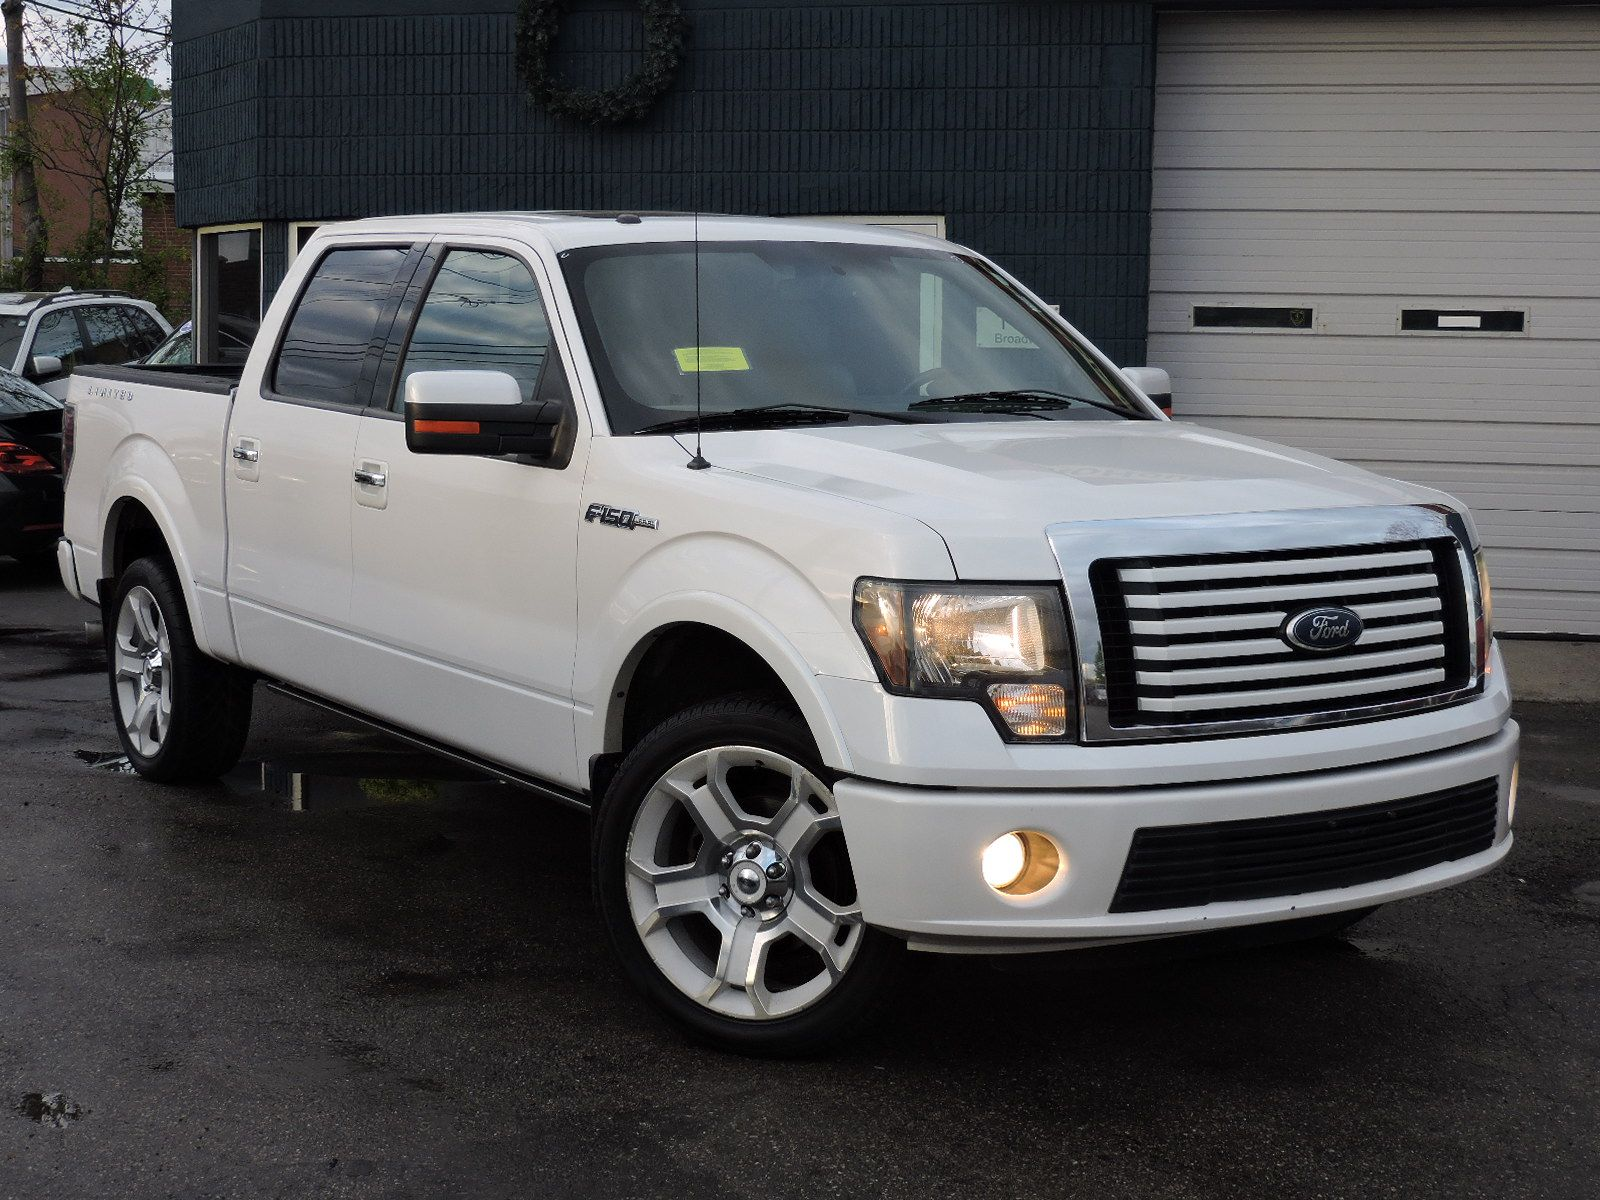 2011 Ford F-150 Lariat Limited Crew Cab AWD